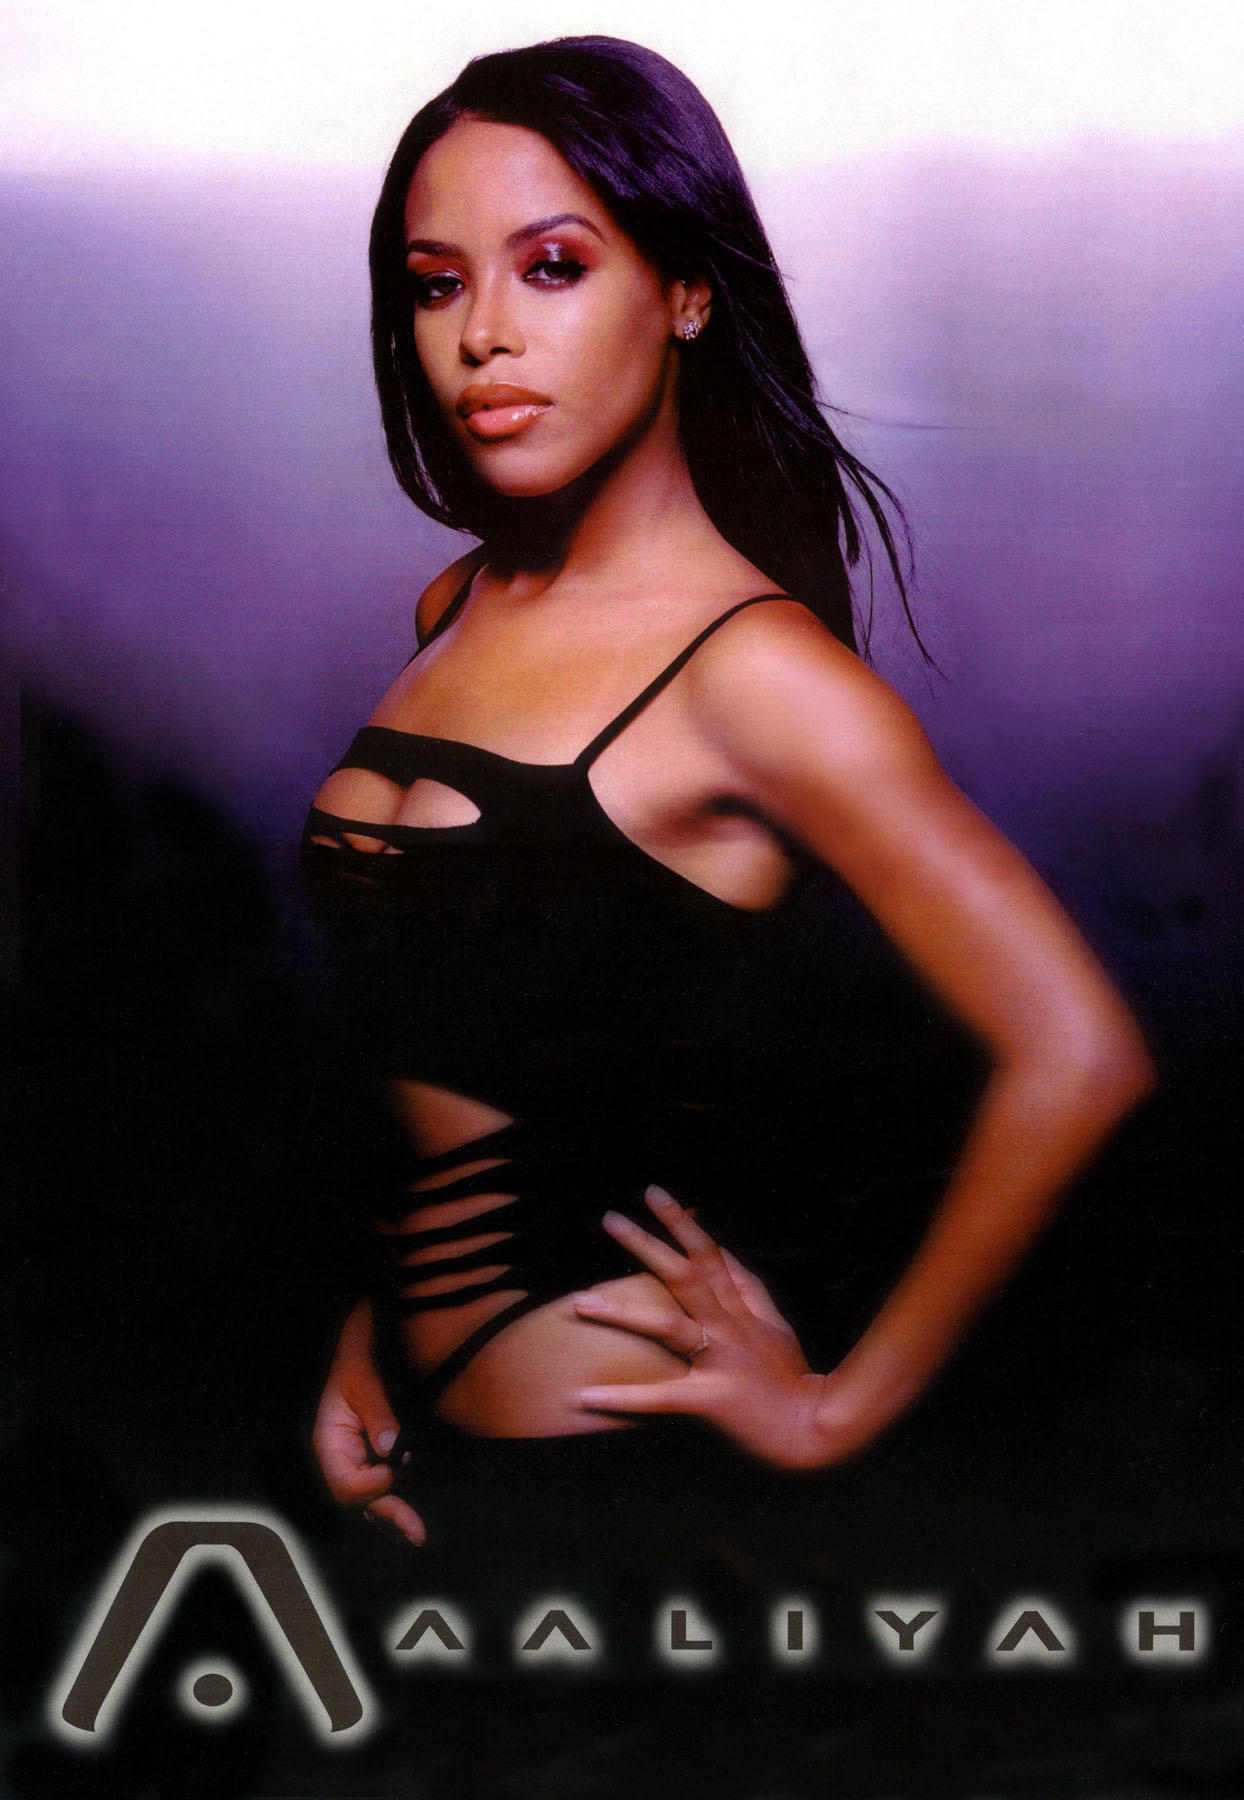 aaliyah wallpapers 25651 best aaliyah pictures